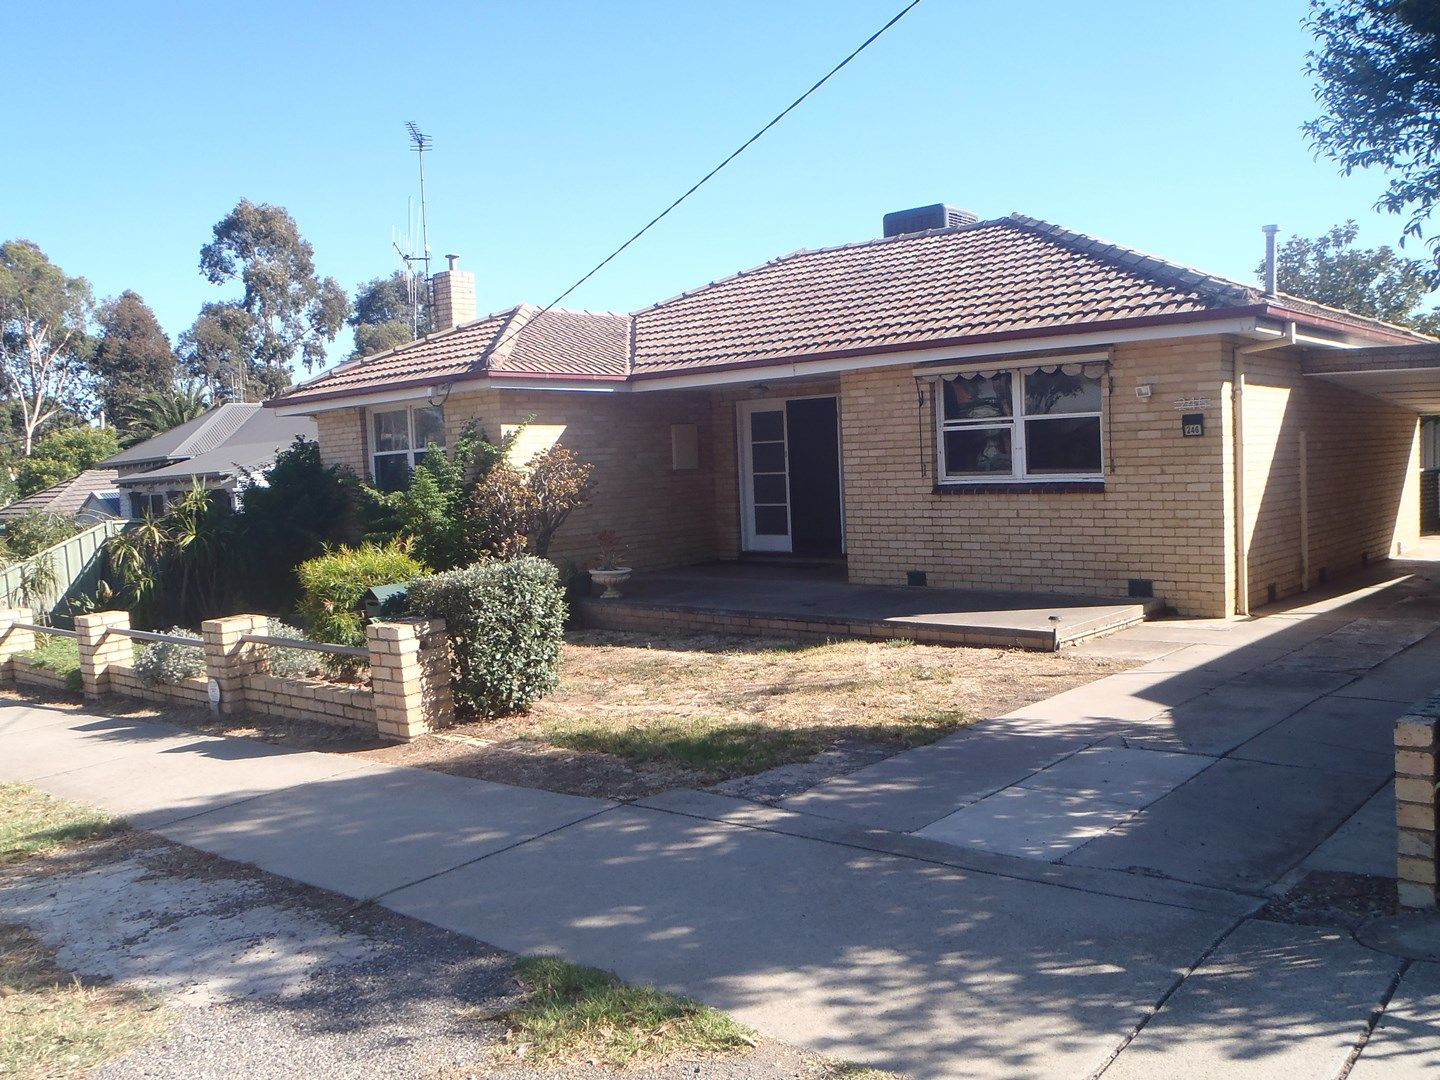 246 Arnold Street, North Bendigo VIC 3550, Image 0